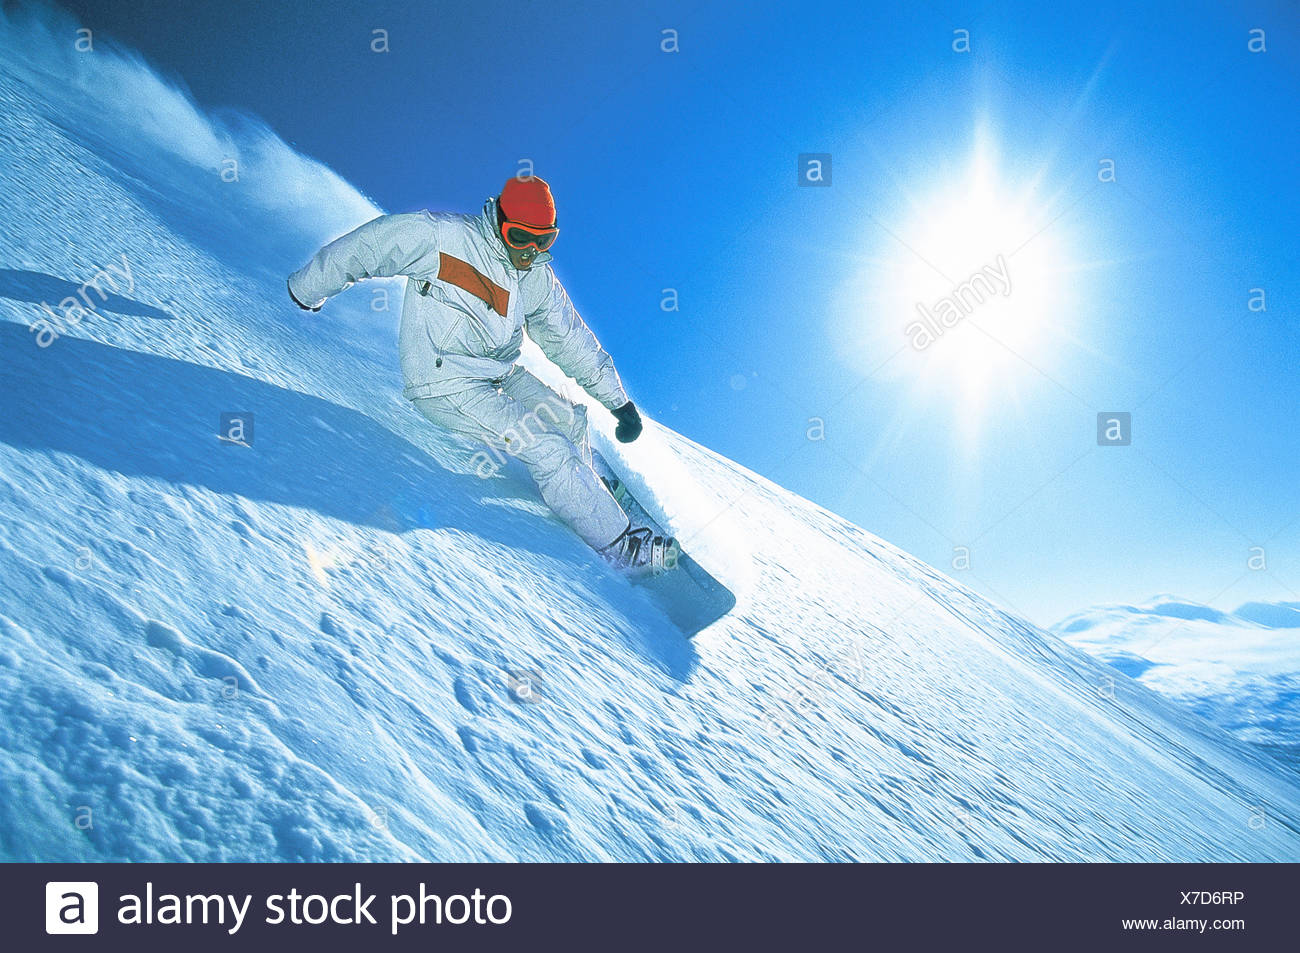 Abisko activity blue catalogue 2 clear sky color image downhill skiing horizontal Lapland leisure lifestyle loose snow movement Stock Photo